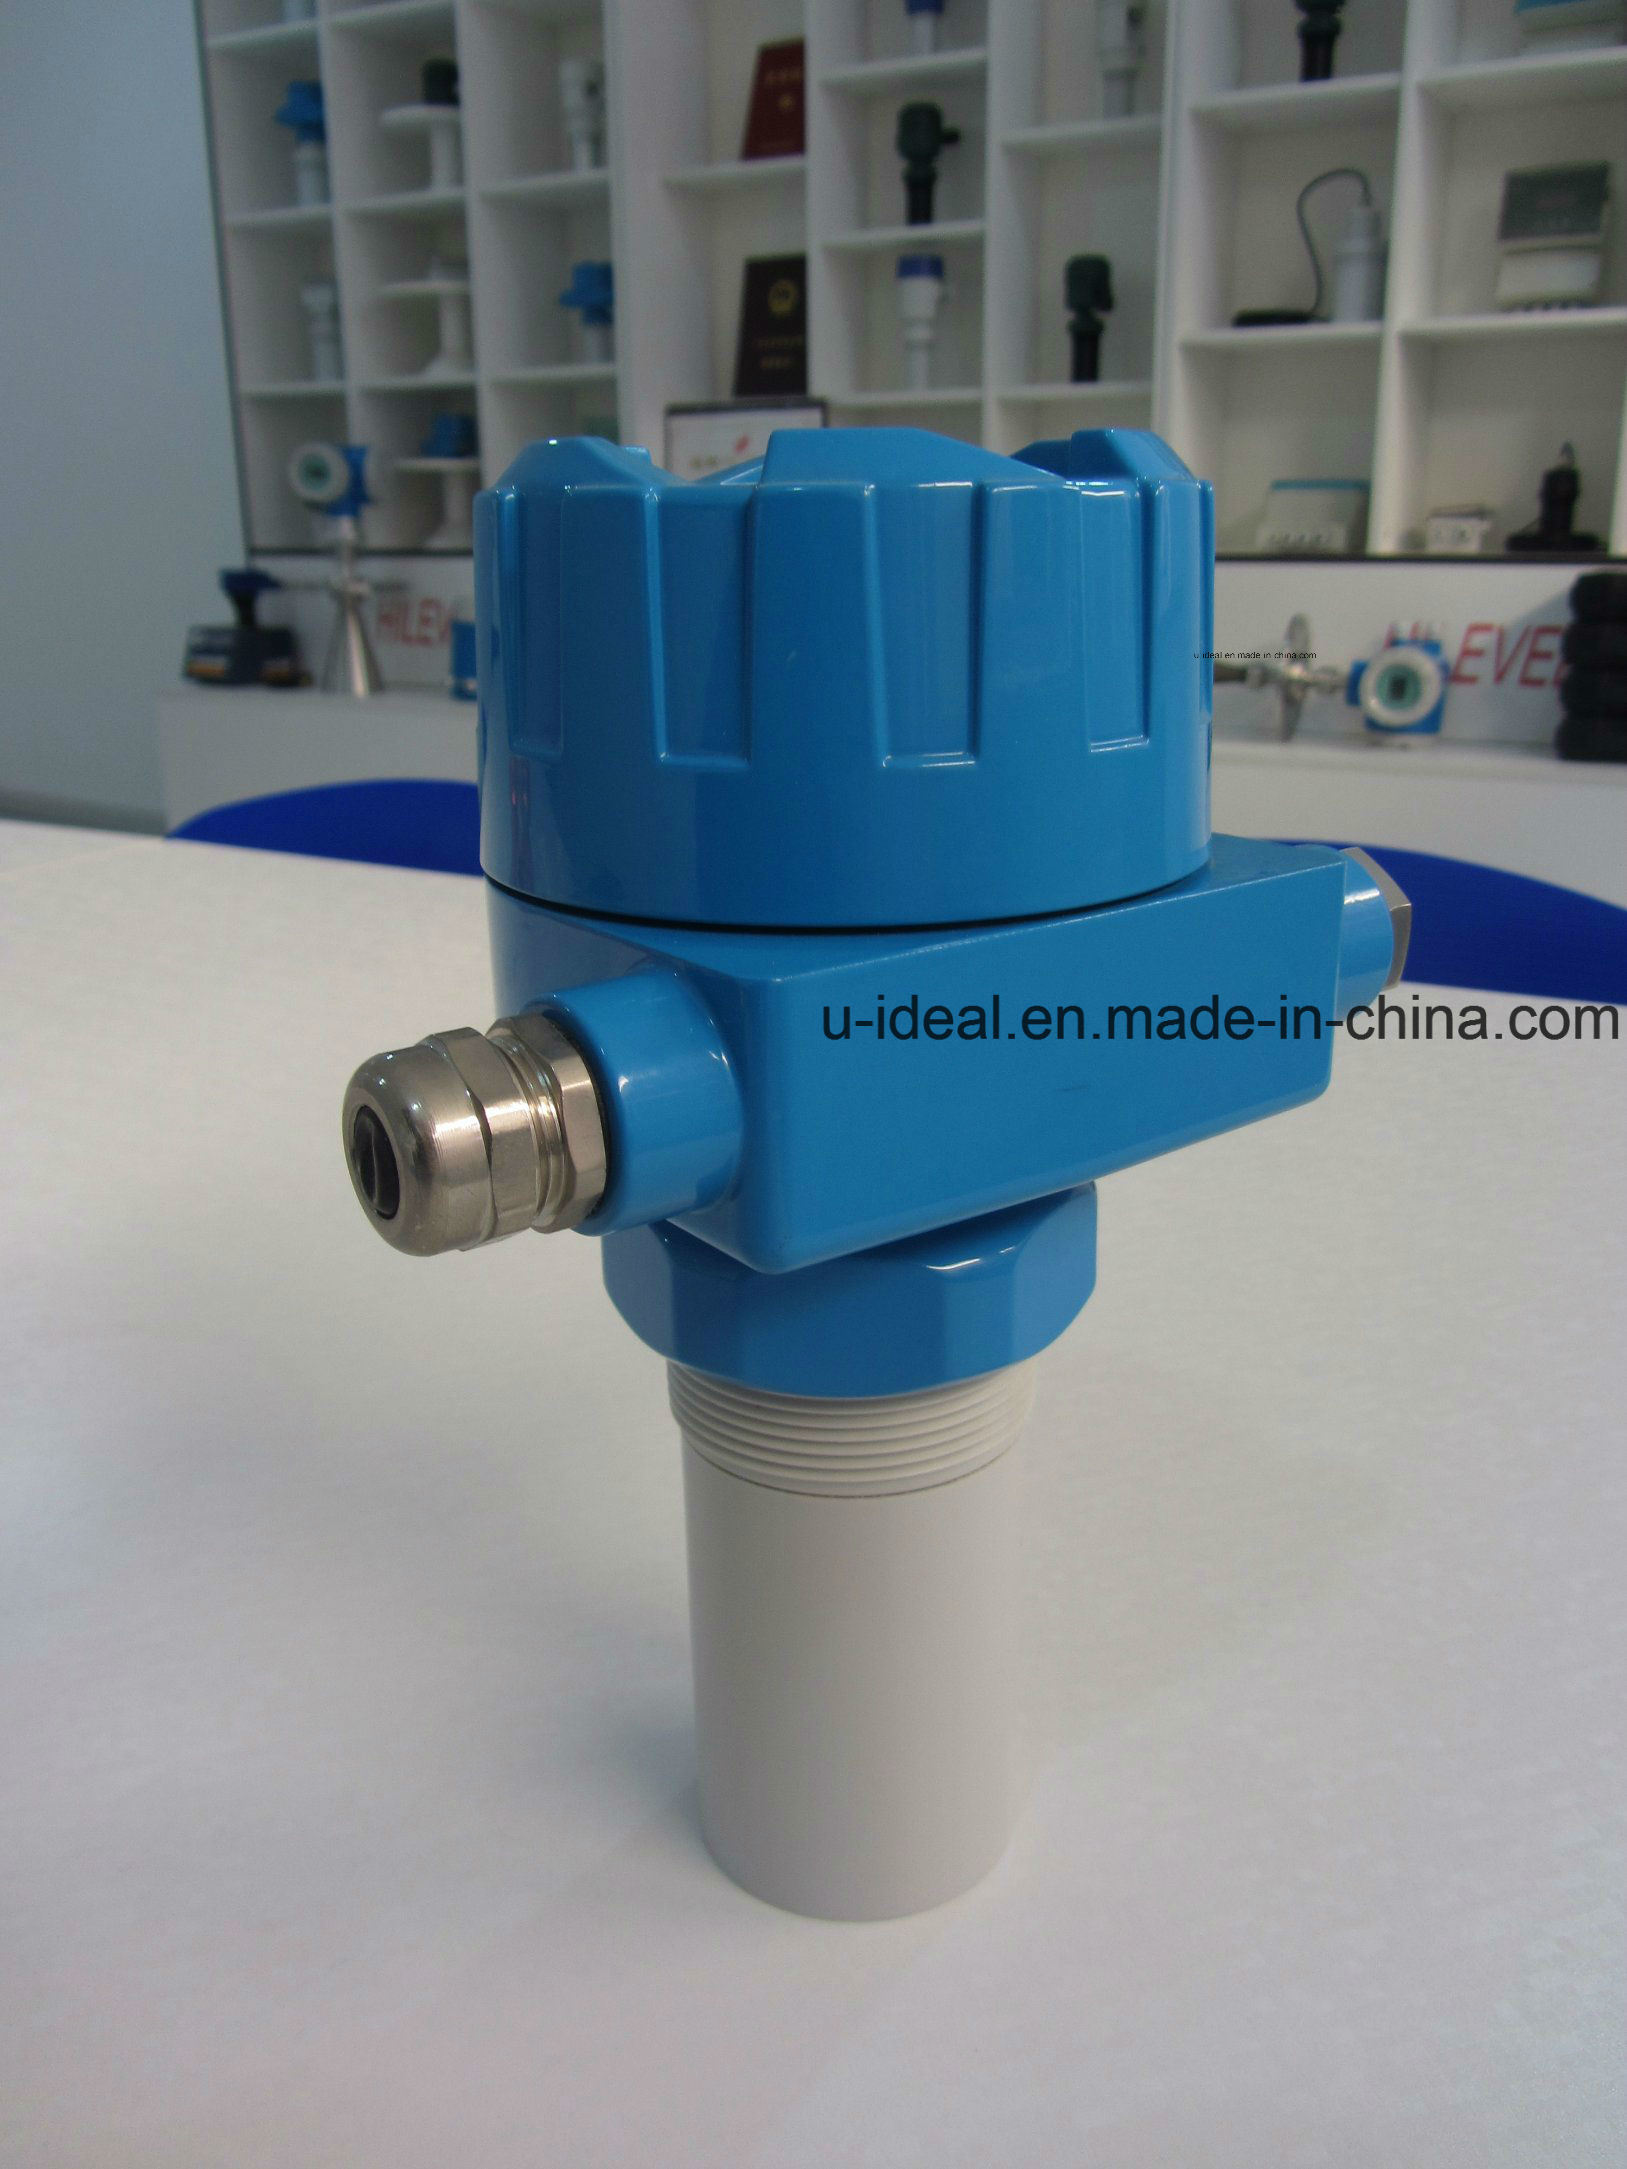 Fuel Ultrasonic Level Sensor -Level Meter for Water, Oil,